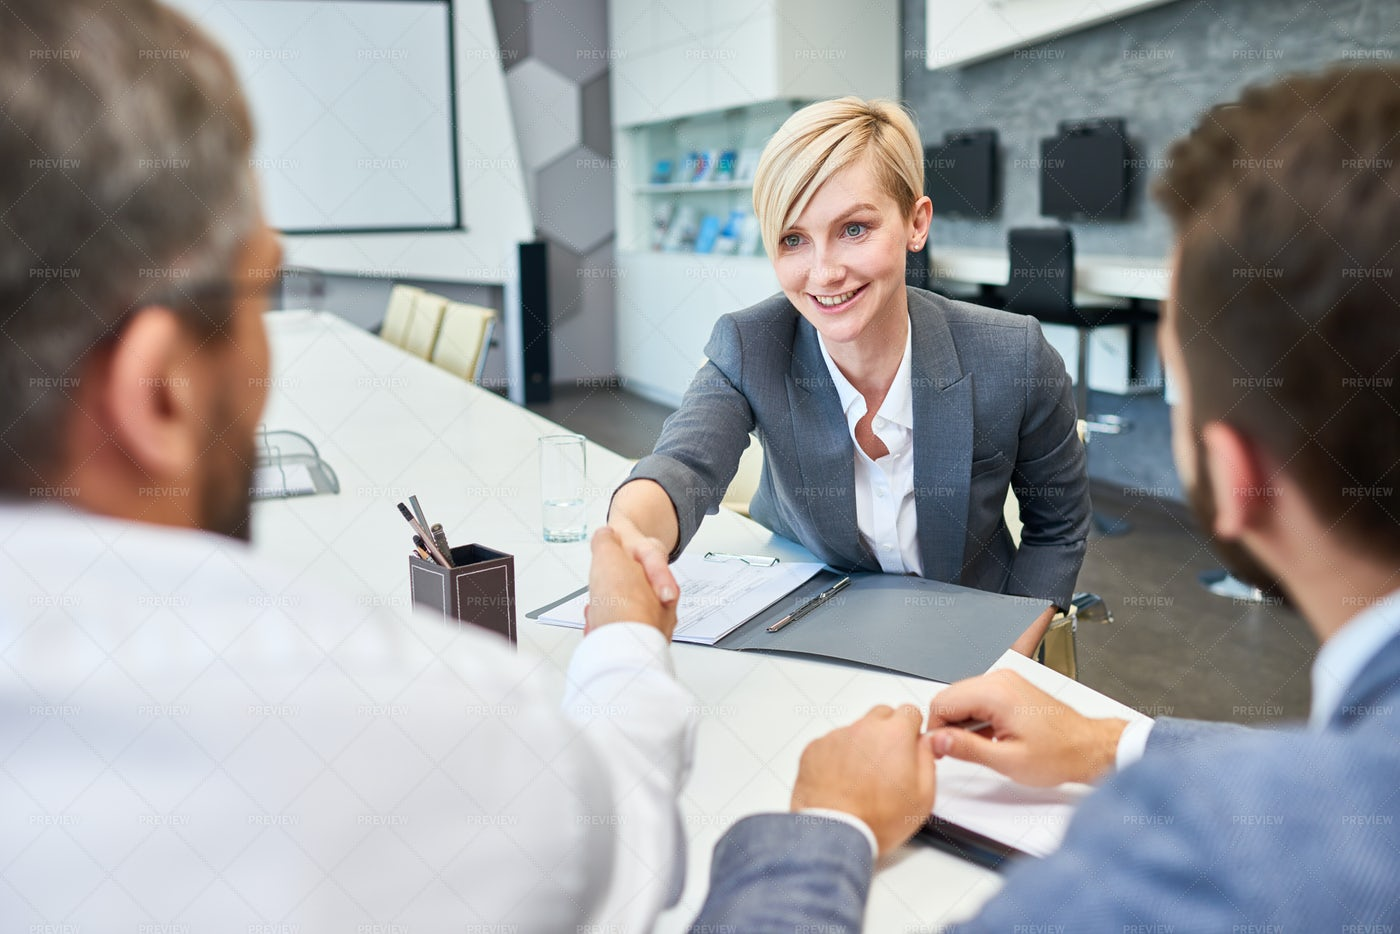 Successful Business Woman Greeting...: Stock Photos